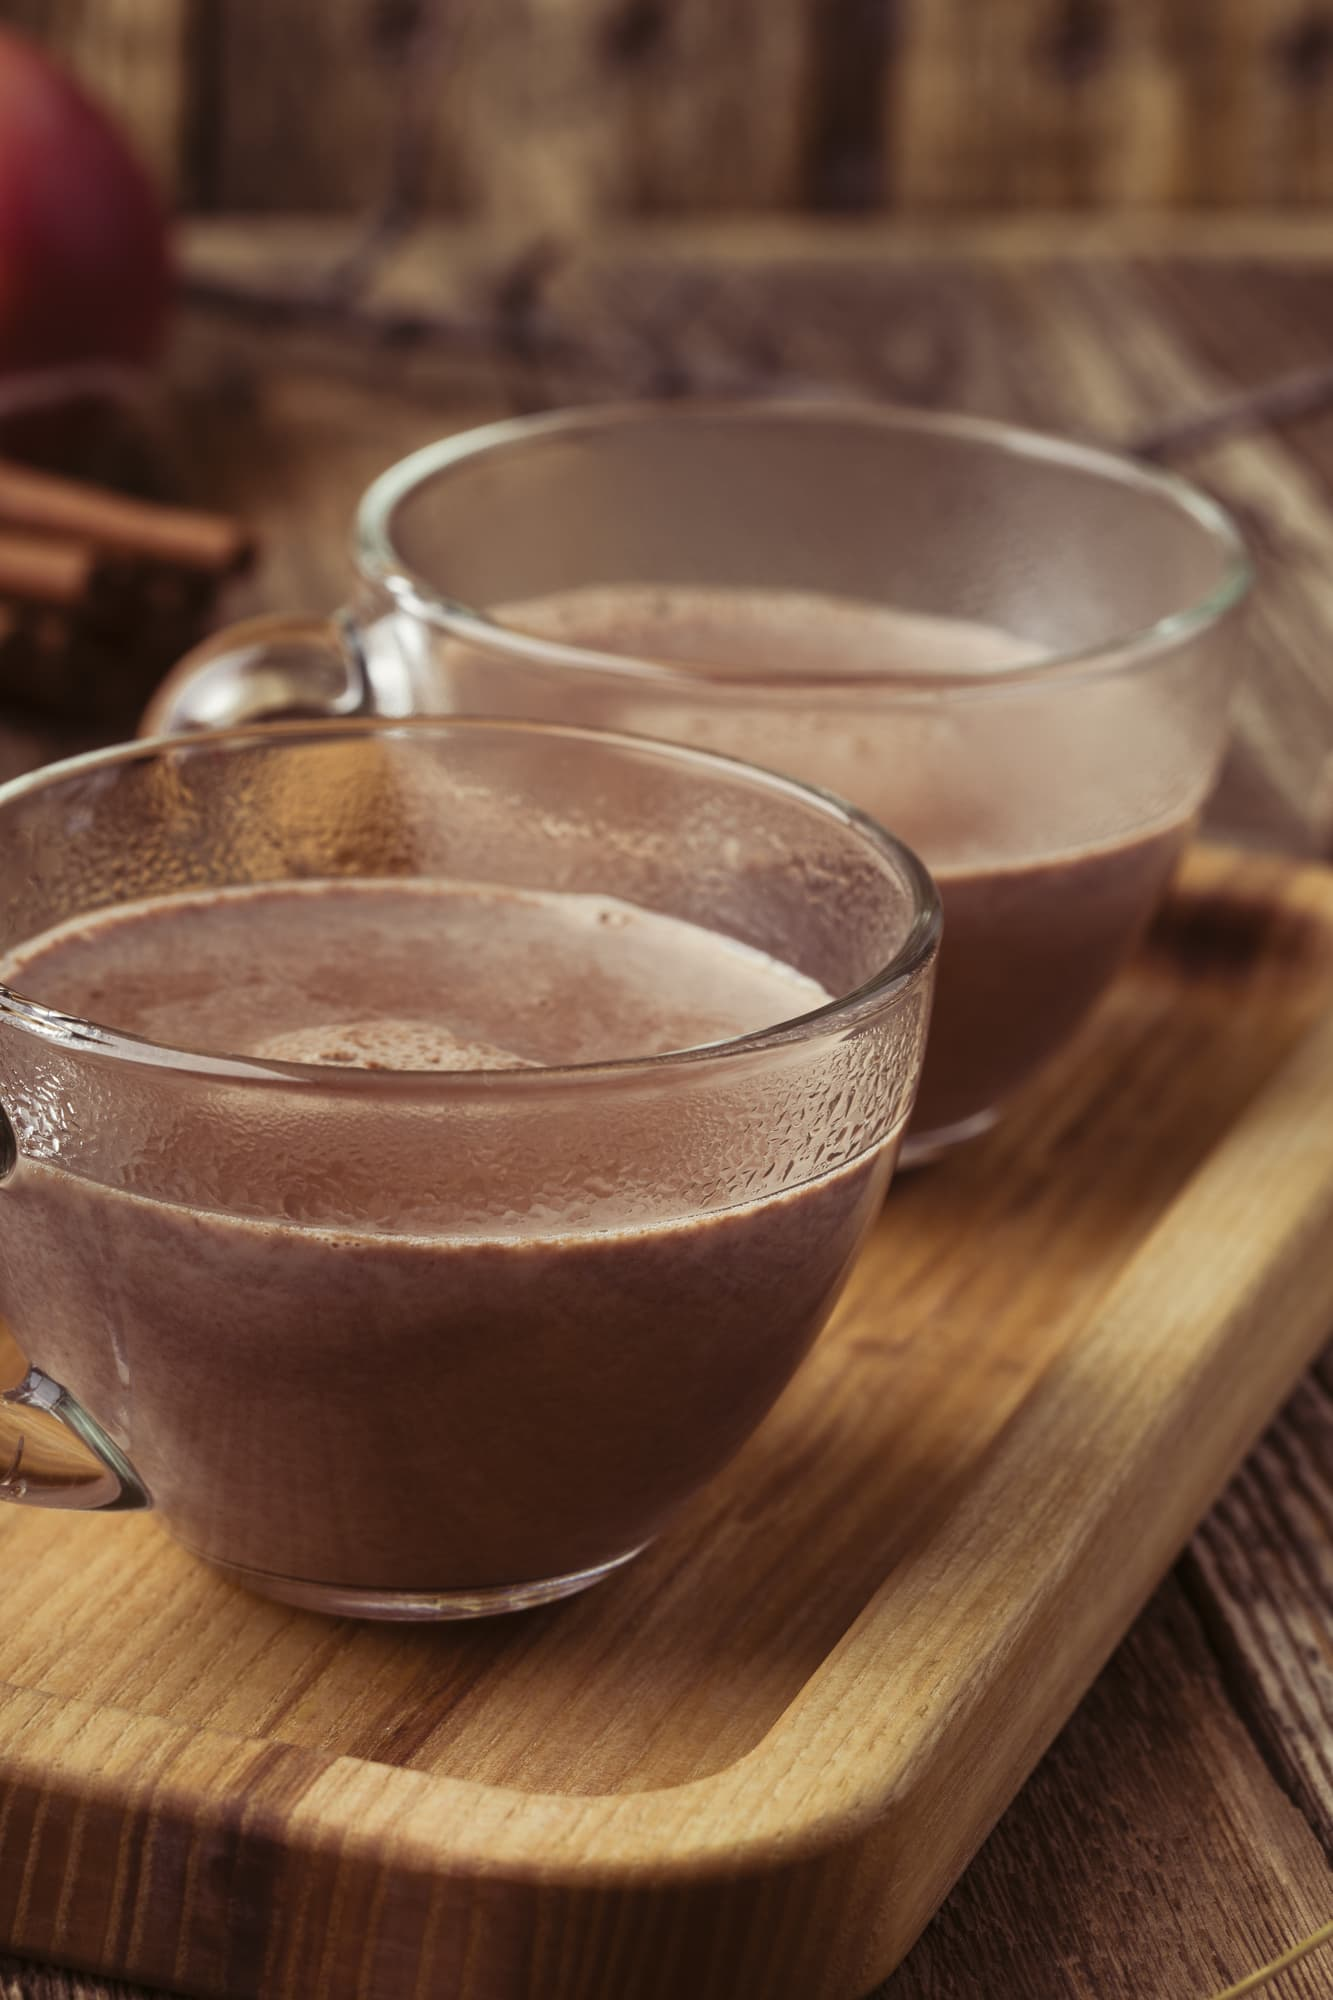 What Makes Vegan Hot Chocolate a Healthy Alternative?